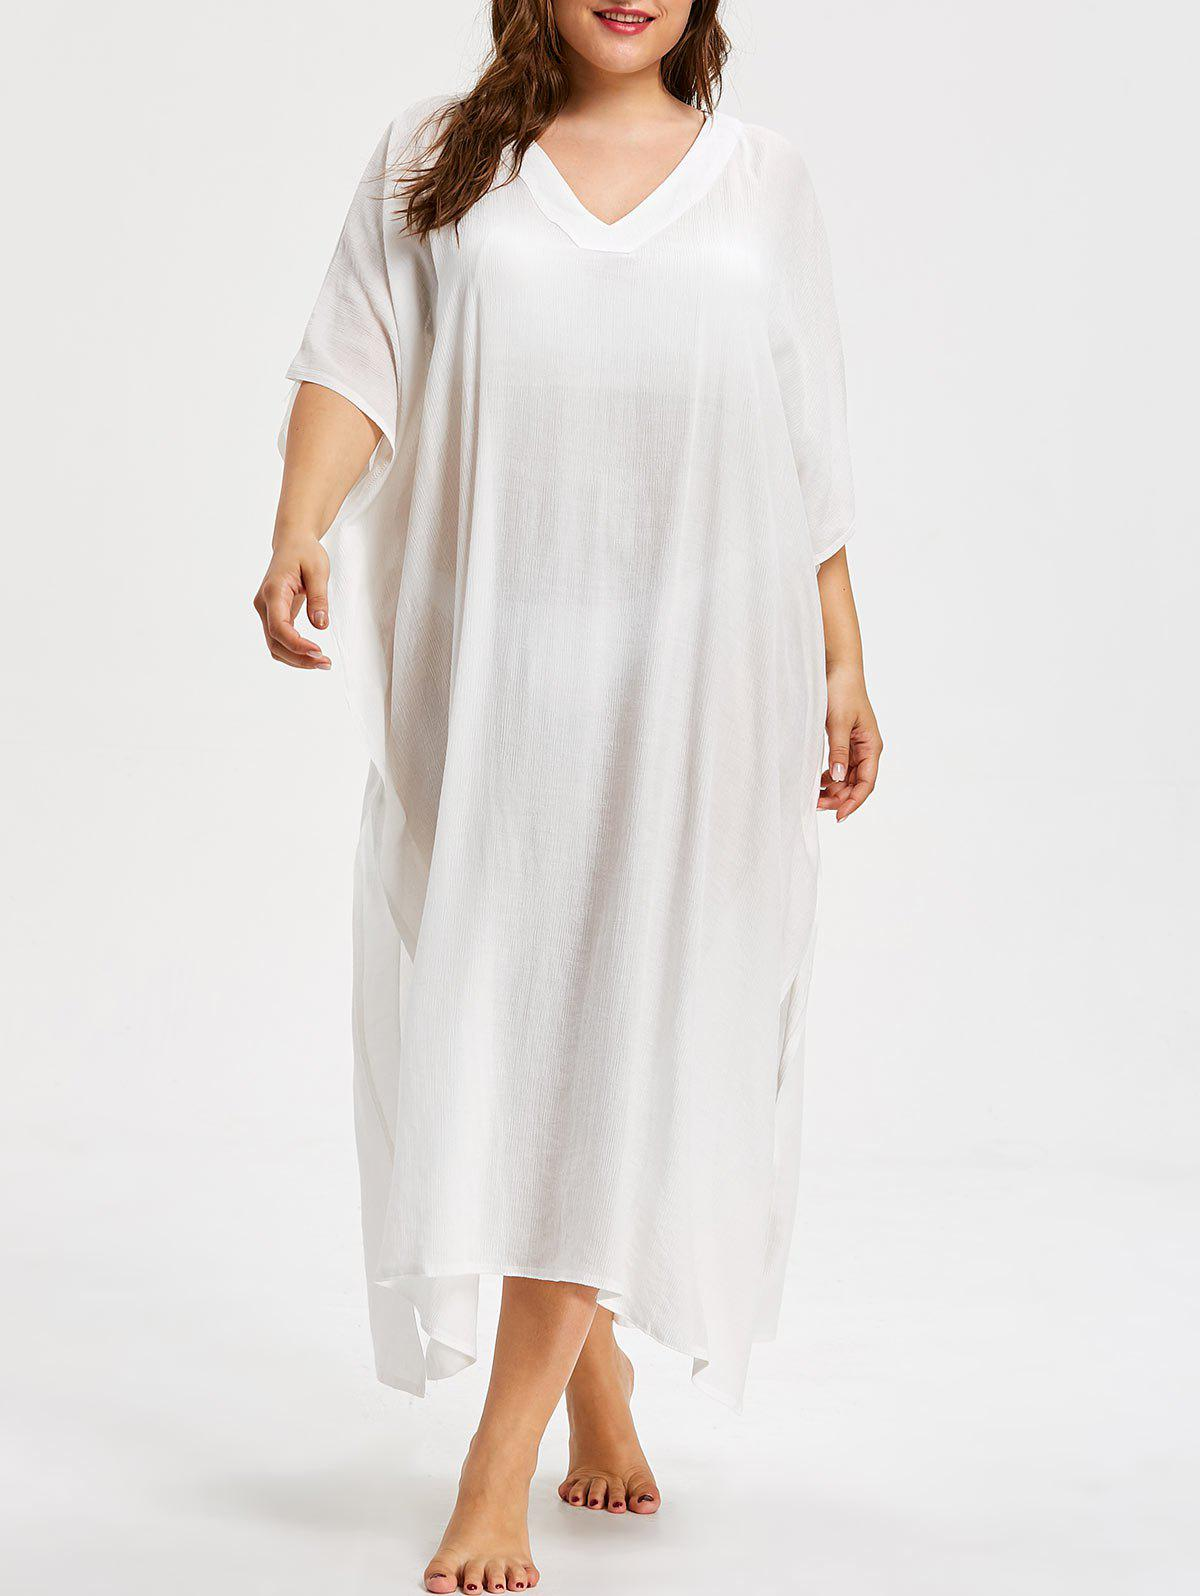 Cheap See Through Plus Size V Neck Cover Up Dress